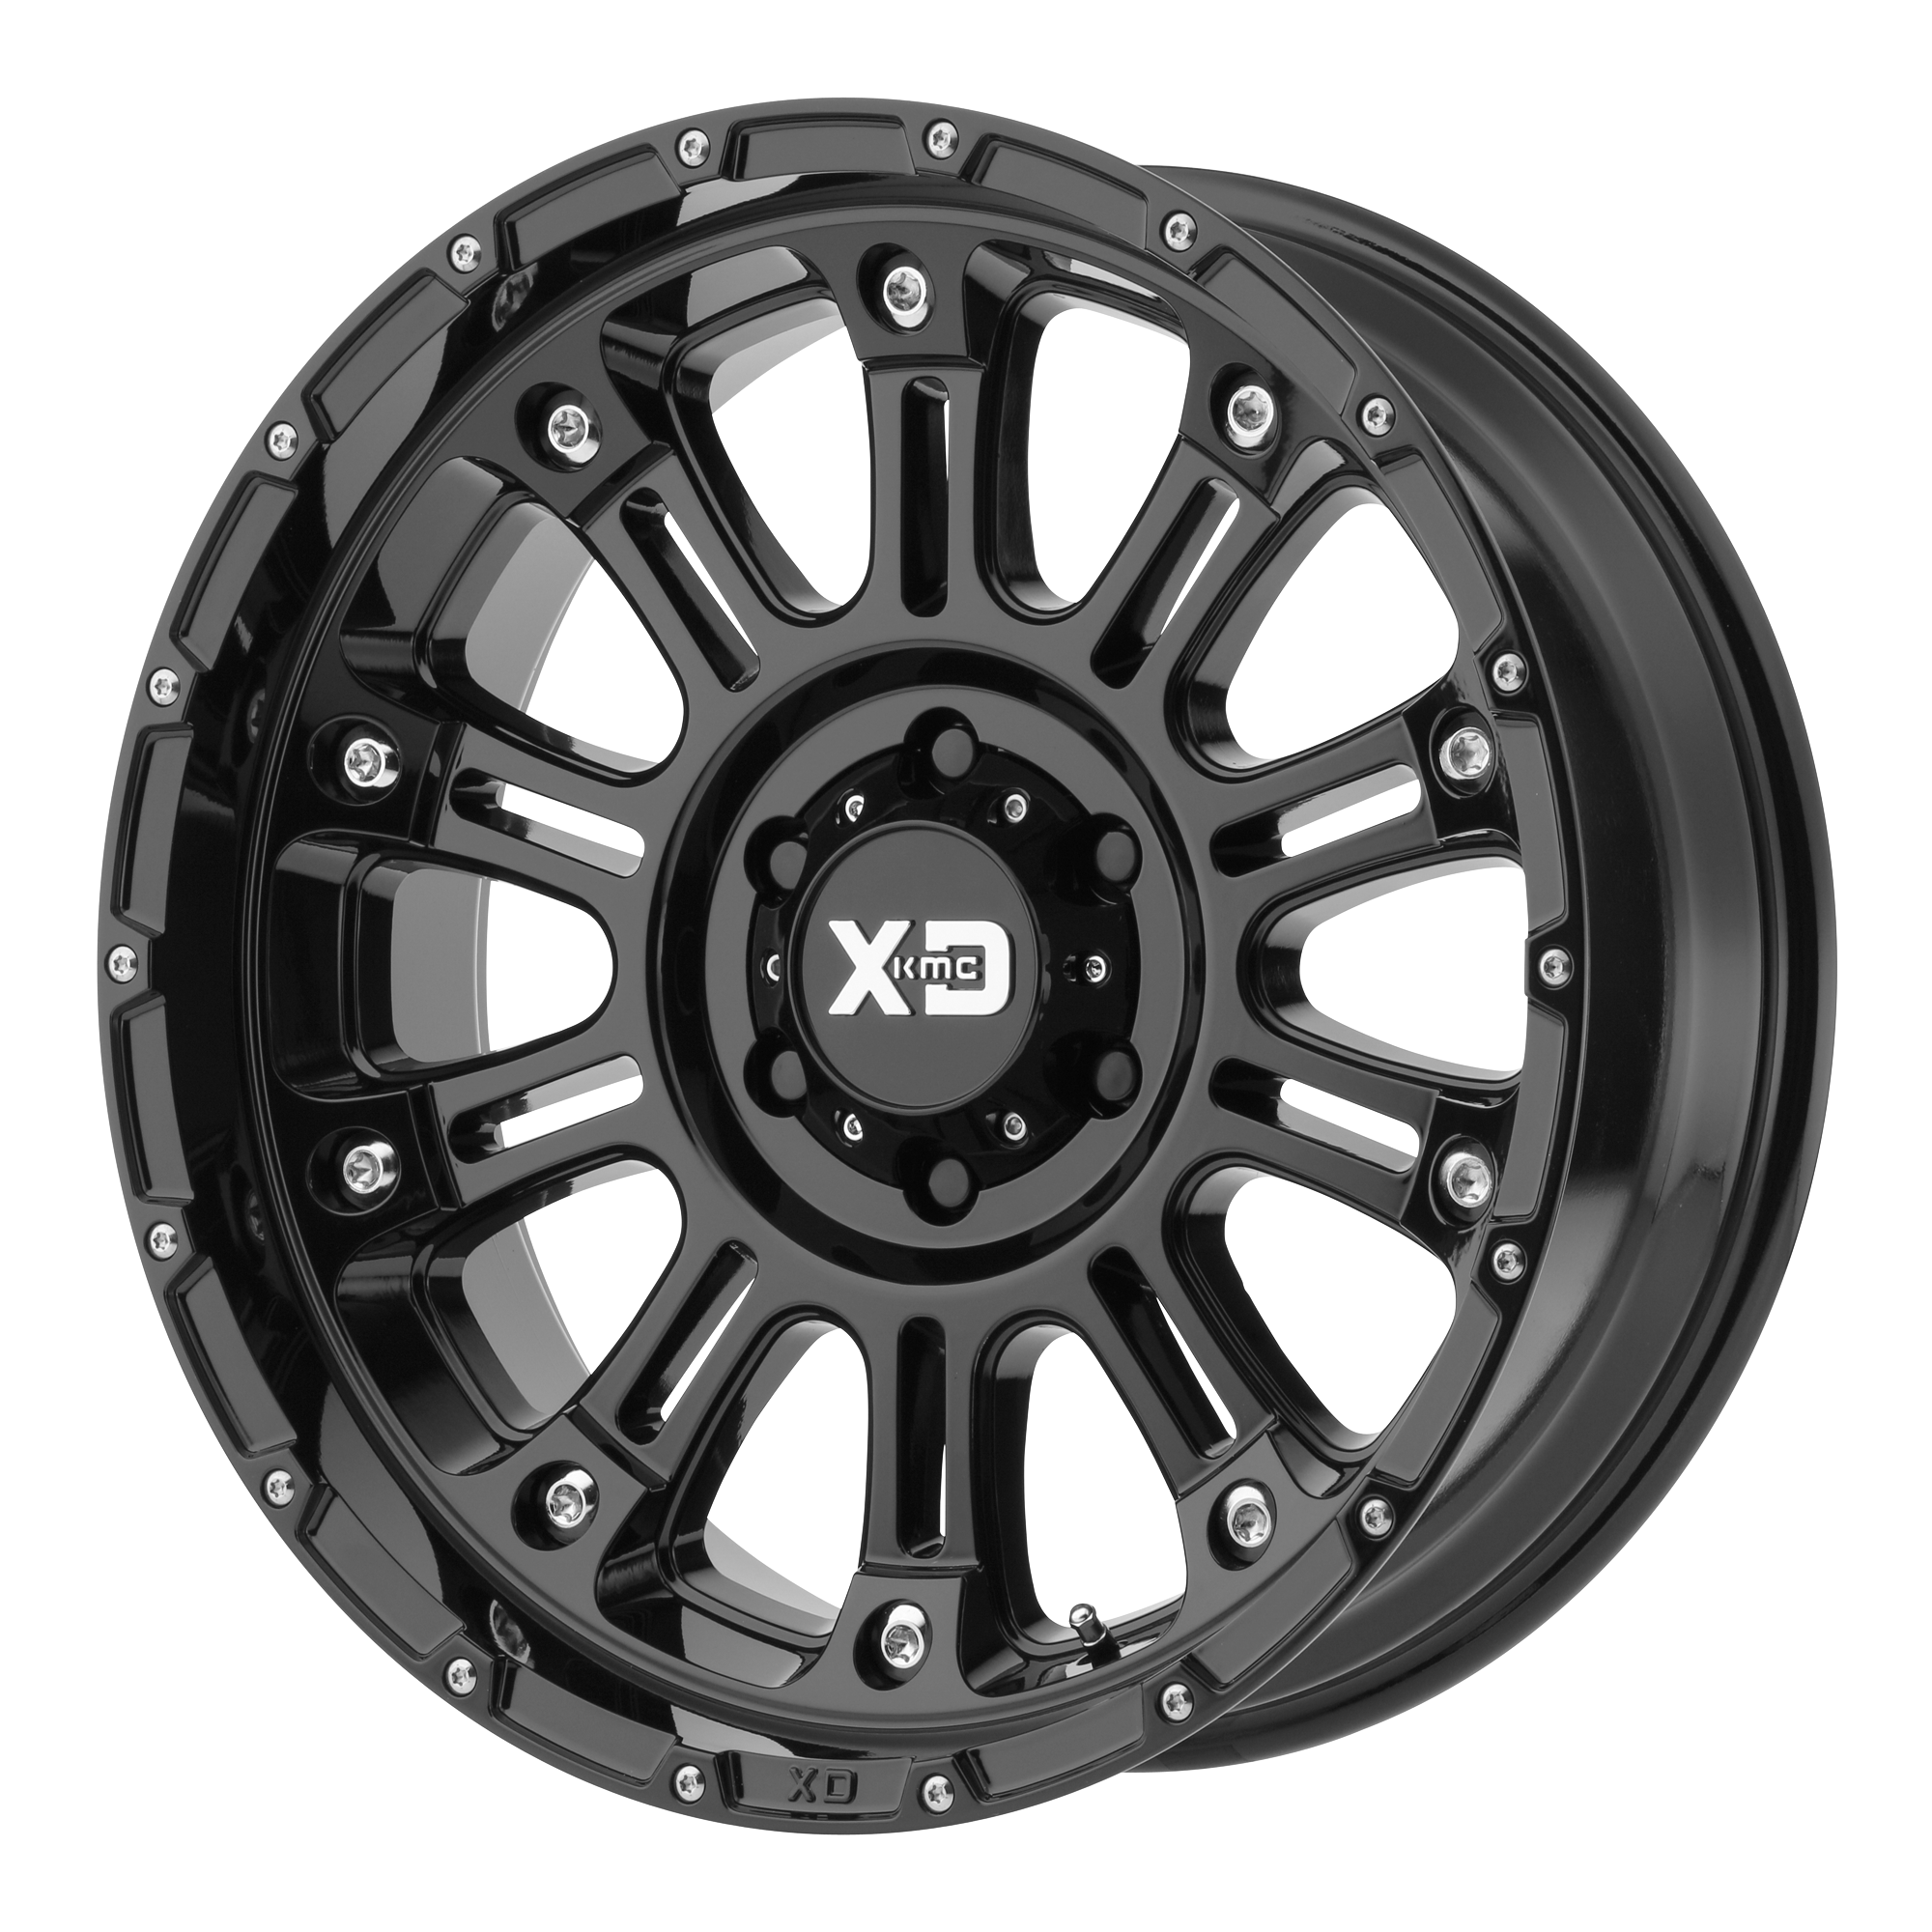 XD SERIES BY KMC WHEELS XD829 HOSS II Gloss Black